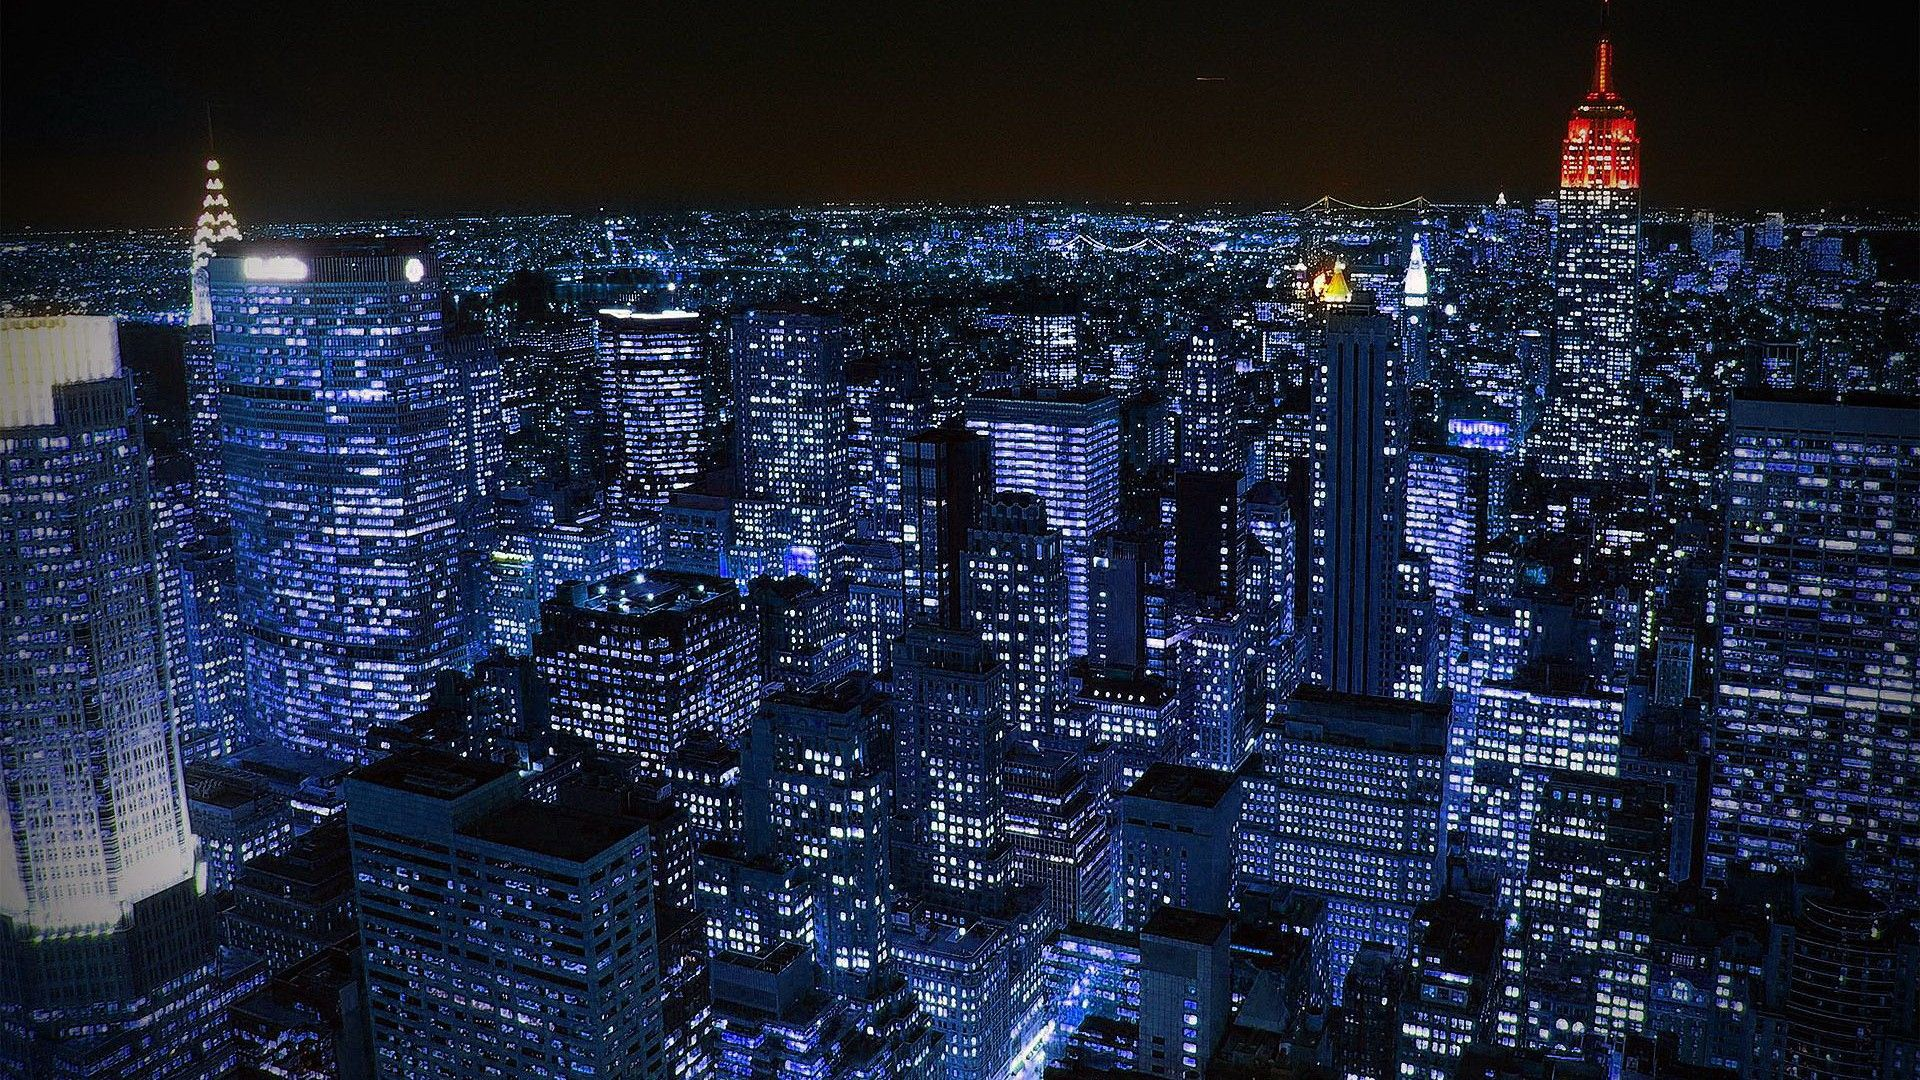 night city wallpaper for desktop